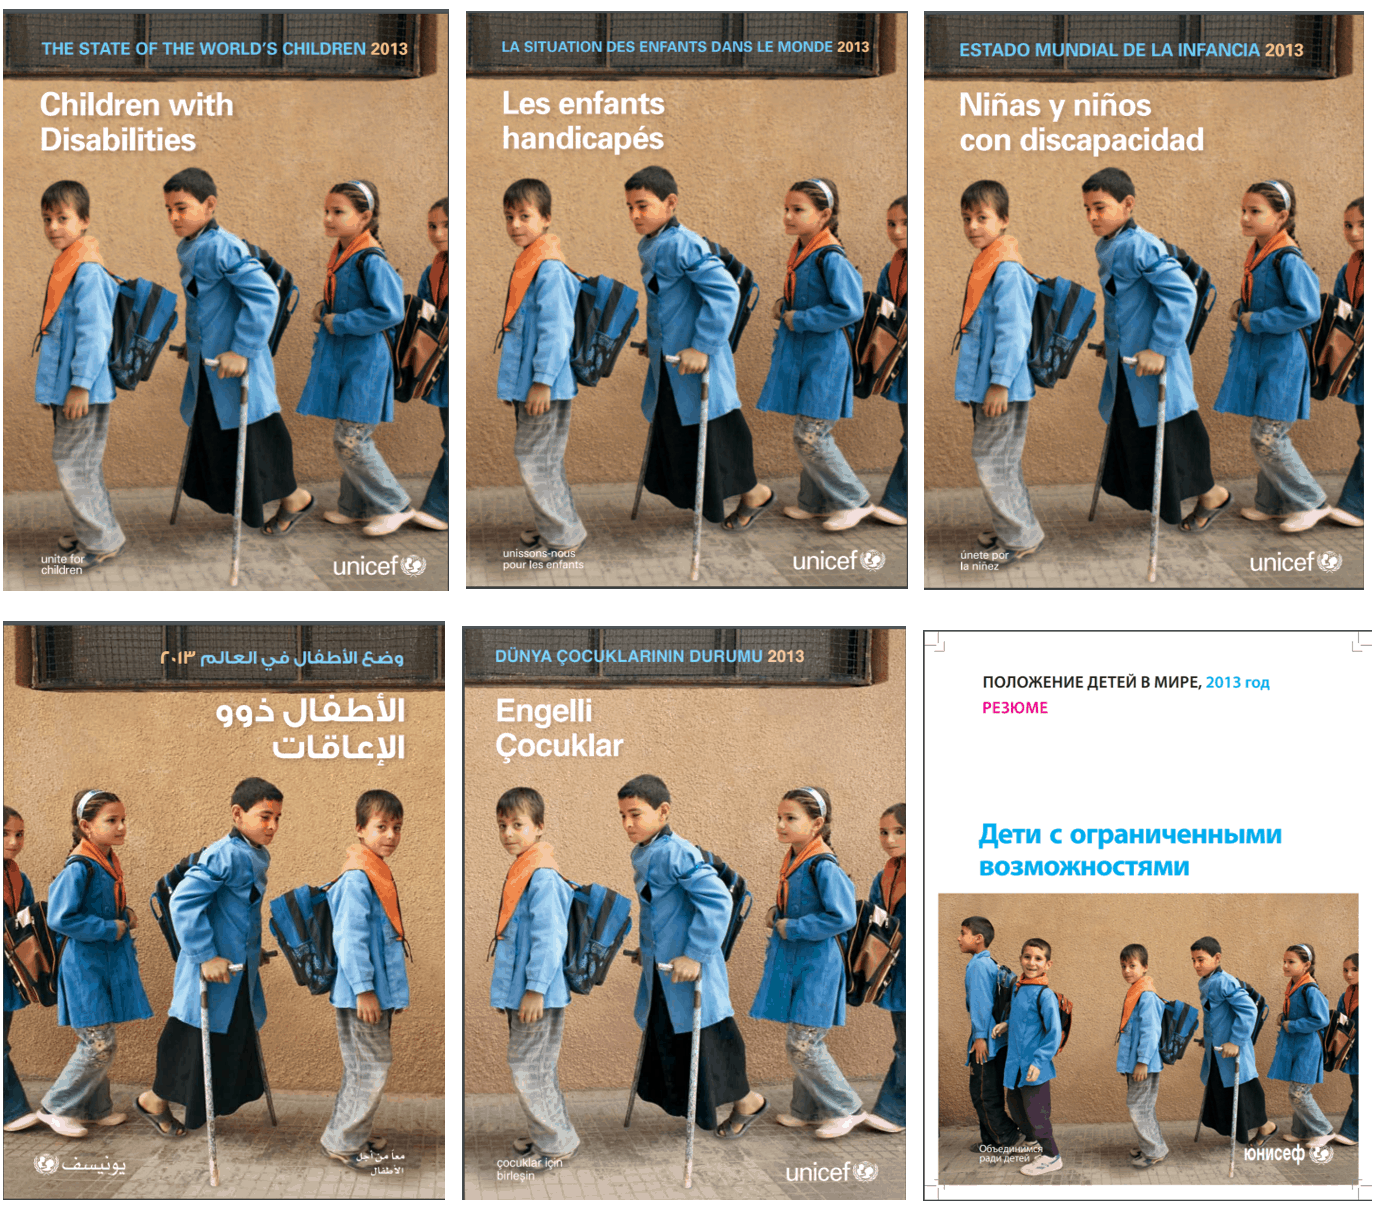 """Cover of the UNICEF publication """"State of the World's Children 2013: Children with Disabilities"""" in six languages, English, French, Spanish, Arabic, Turkey, and Russian"""